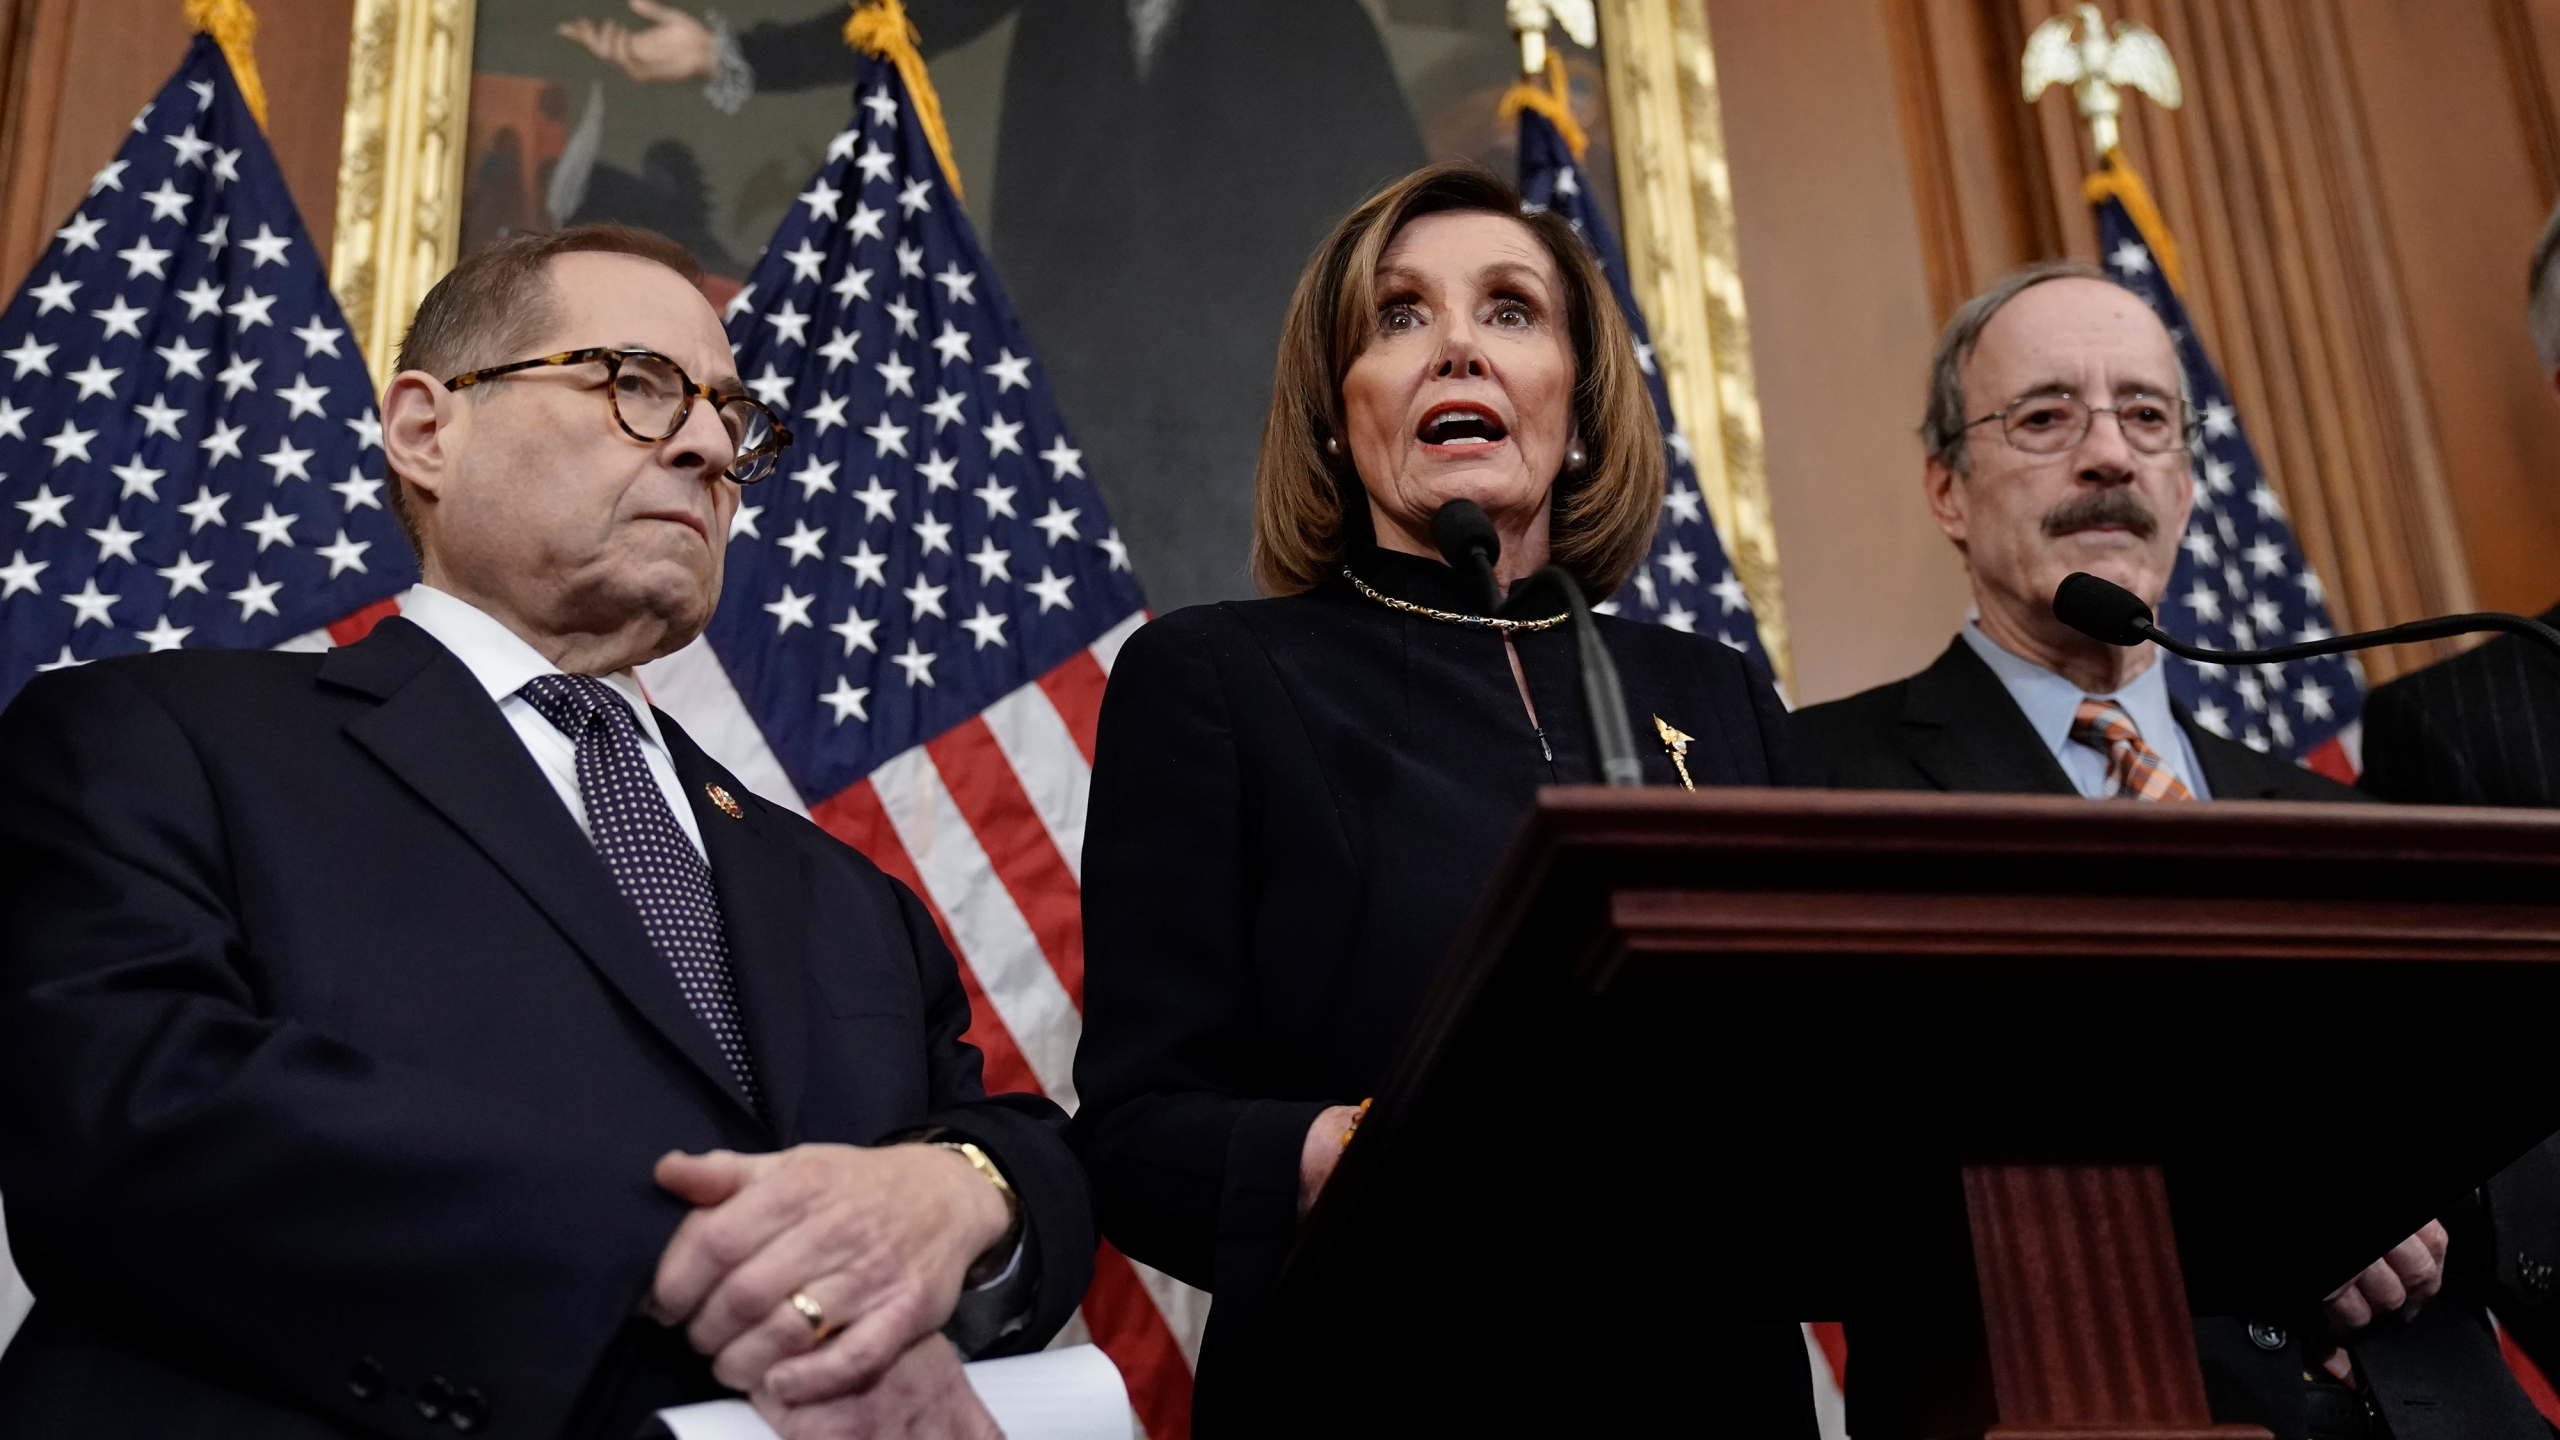 Speaker of the House Nancy Pelosi, D-Calif., flanked by House Judiciary Committee Chairman Jerrold Nadler, D-N.Y., left, and House Foreign Affairs Committee Chairman Eliot Engel, D-N.Y., speaks reporters at the Capitol in Washington, Wednesday, Dec. 18, 2019, after the House of Representatives voted to impeach President Donald Trump. (AP Photo/J. Scott Applewhite)